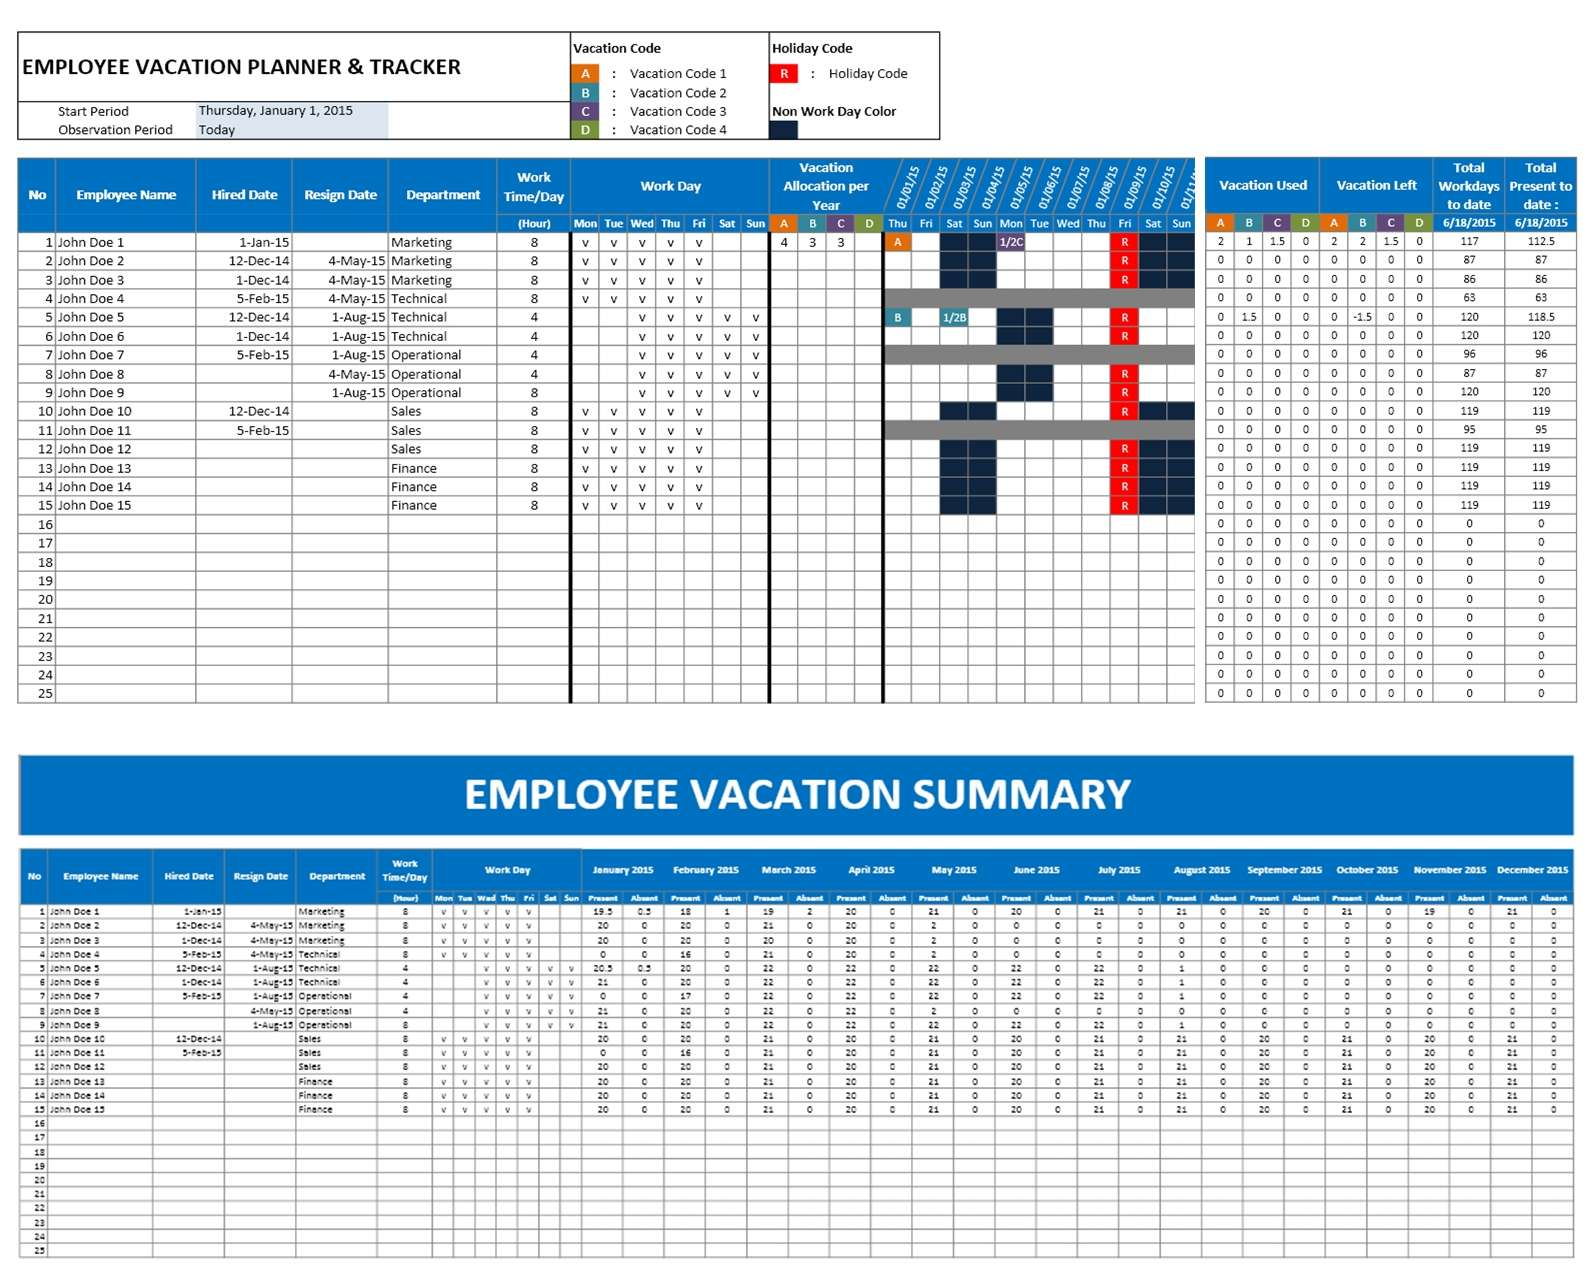 7 Best Images of Free Printable Vacation Calendar 2016 Employee